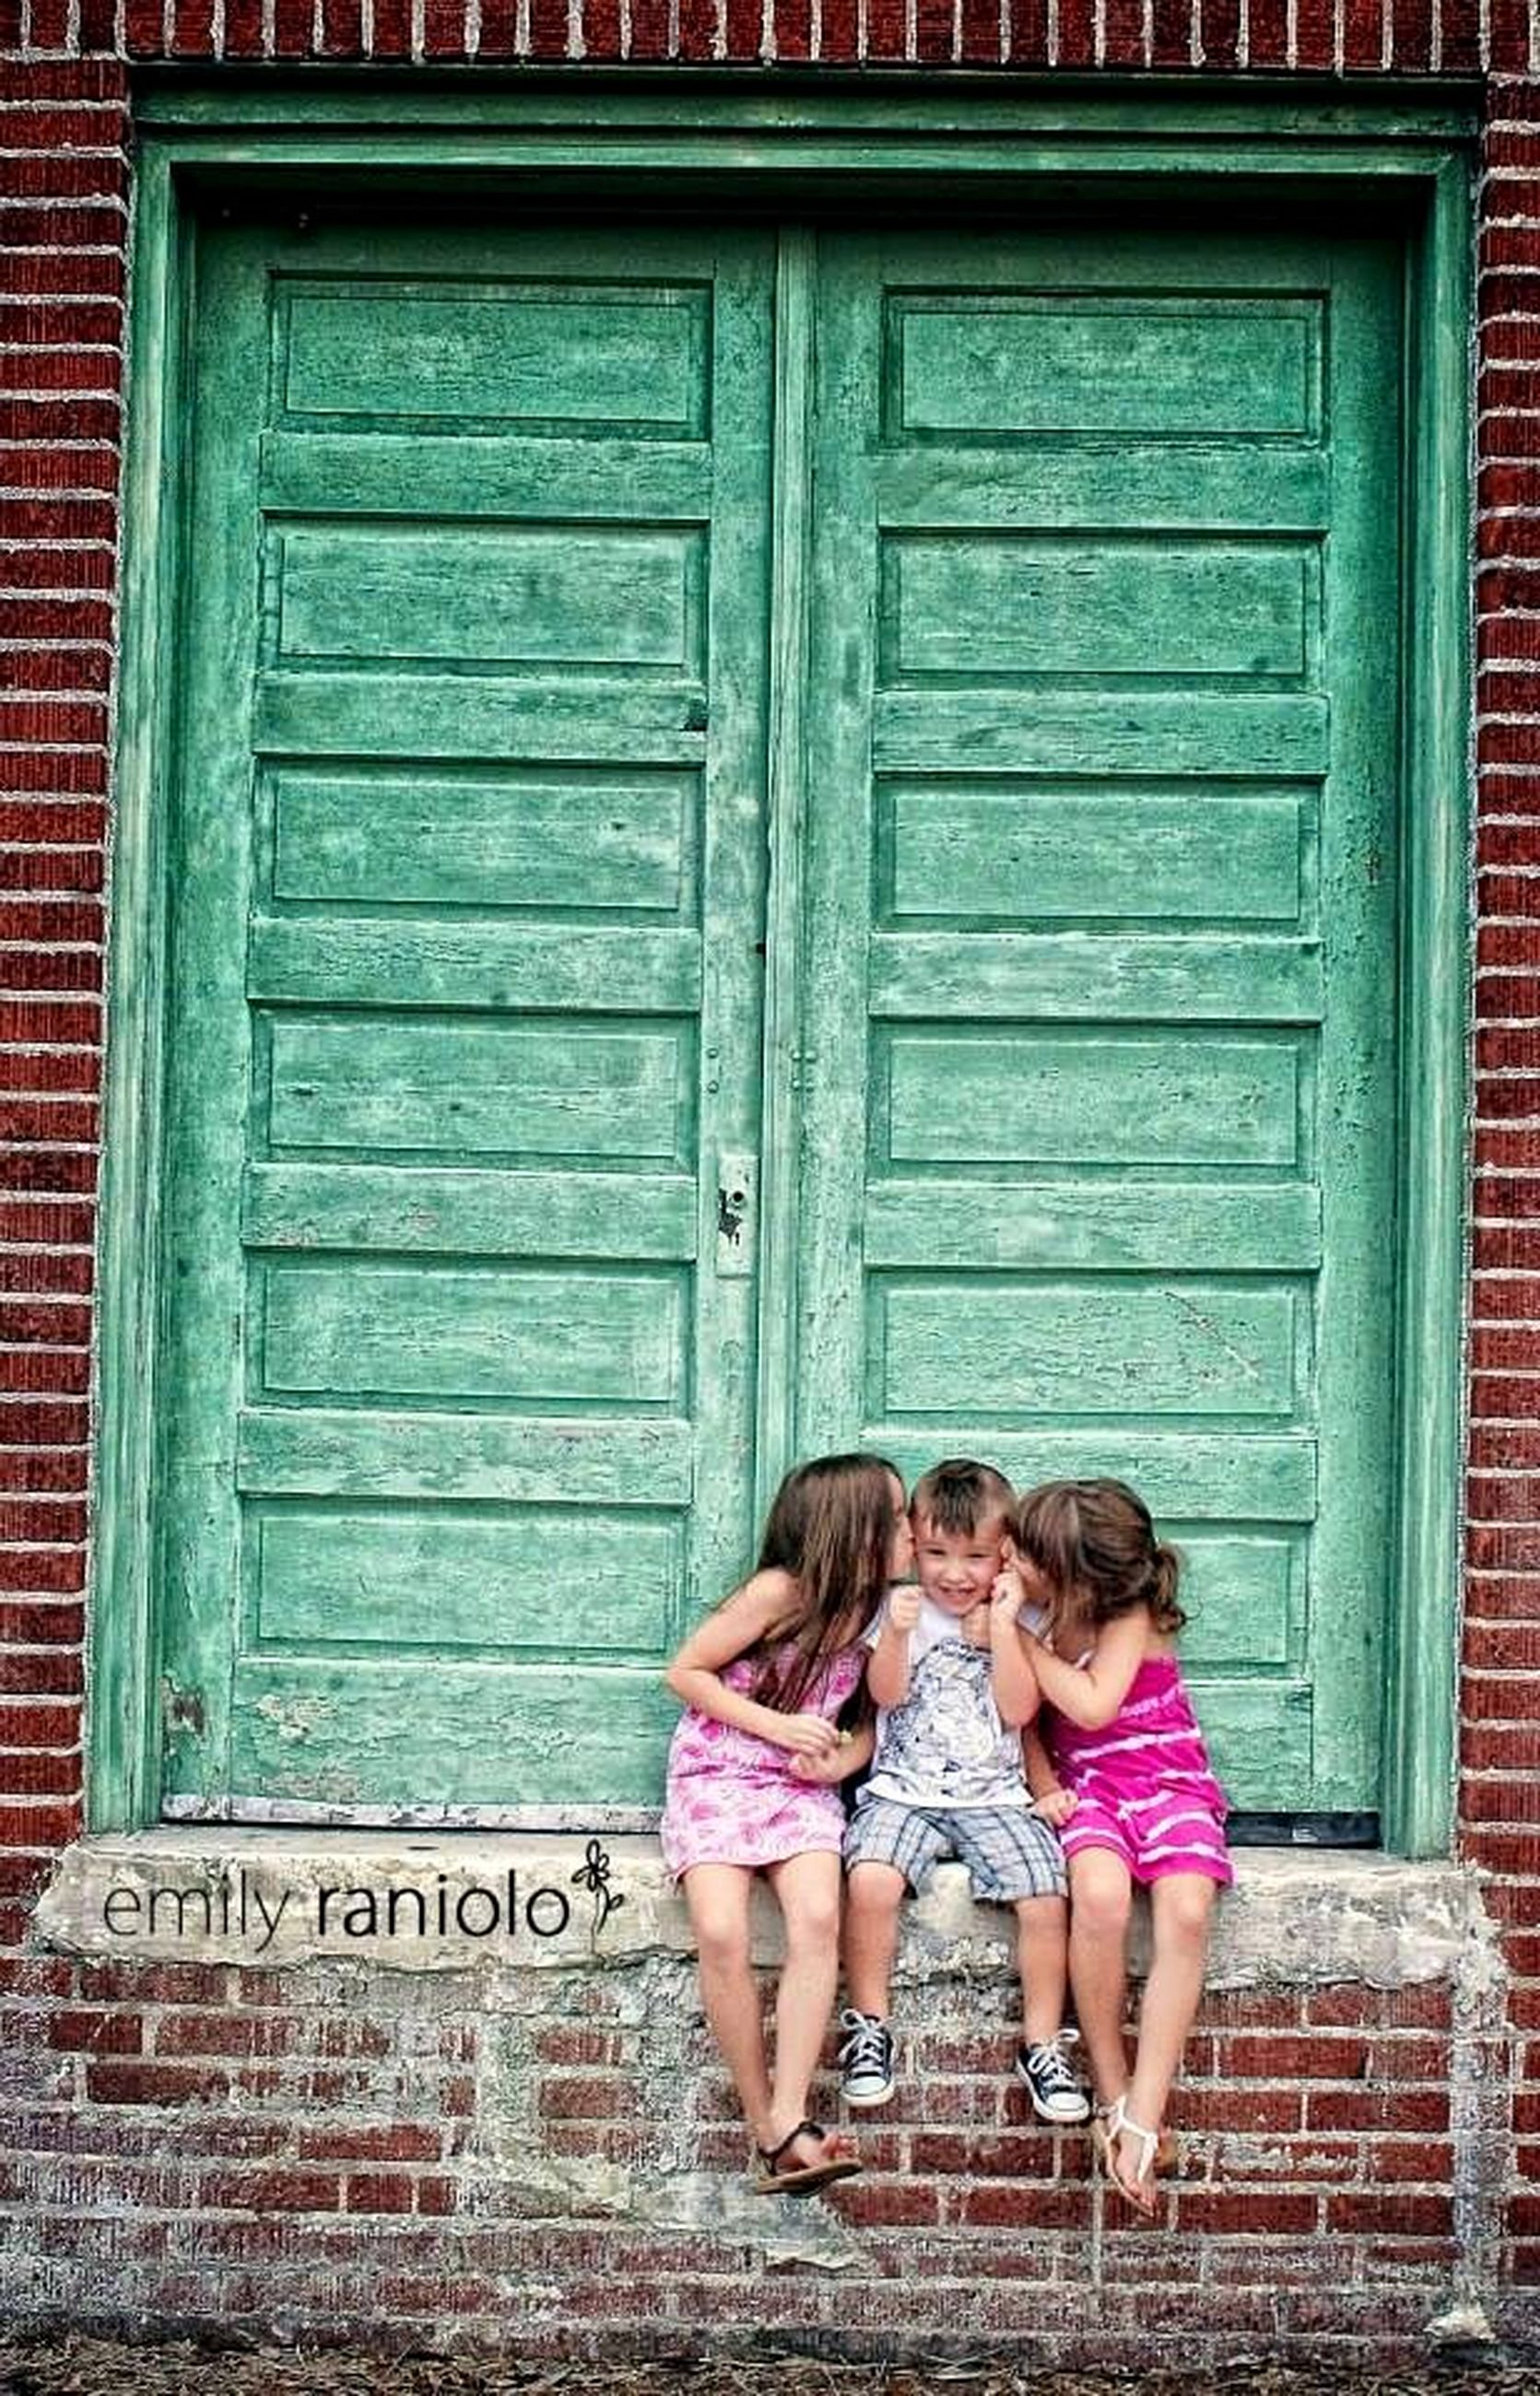 lifestyles, full length, casual clothing, leisure activity, built structure, architecture, building exterior, door, standing, rear view, wall - building feature, togetherness, person, wood - material, front view, love, childhood